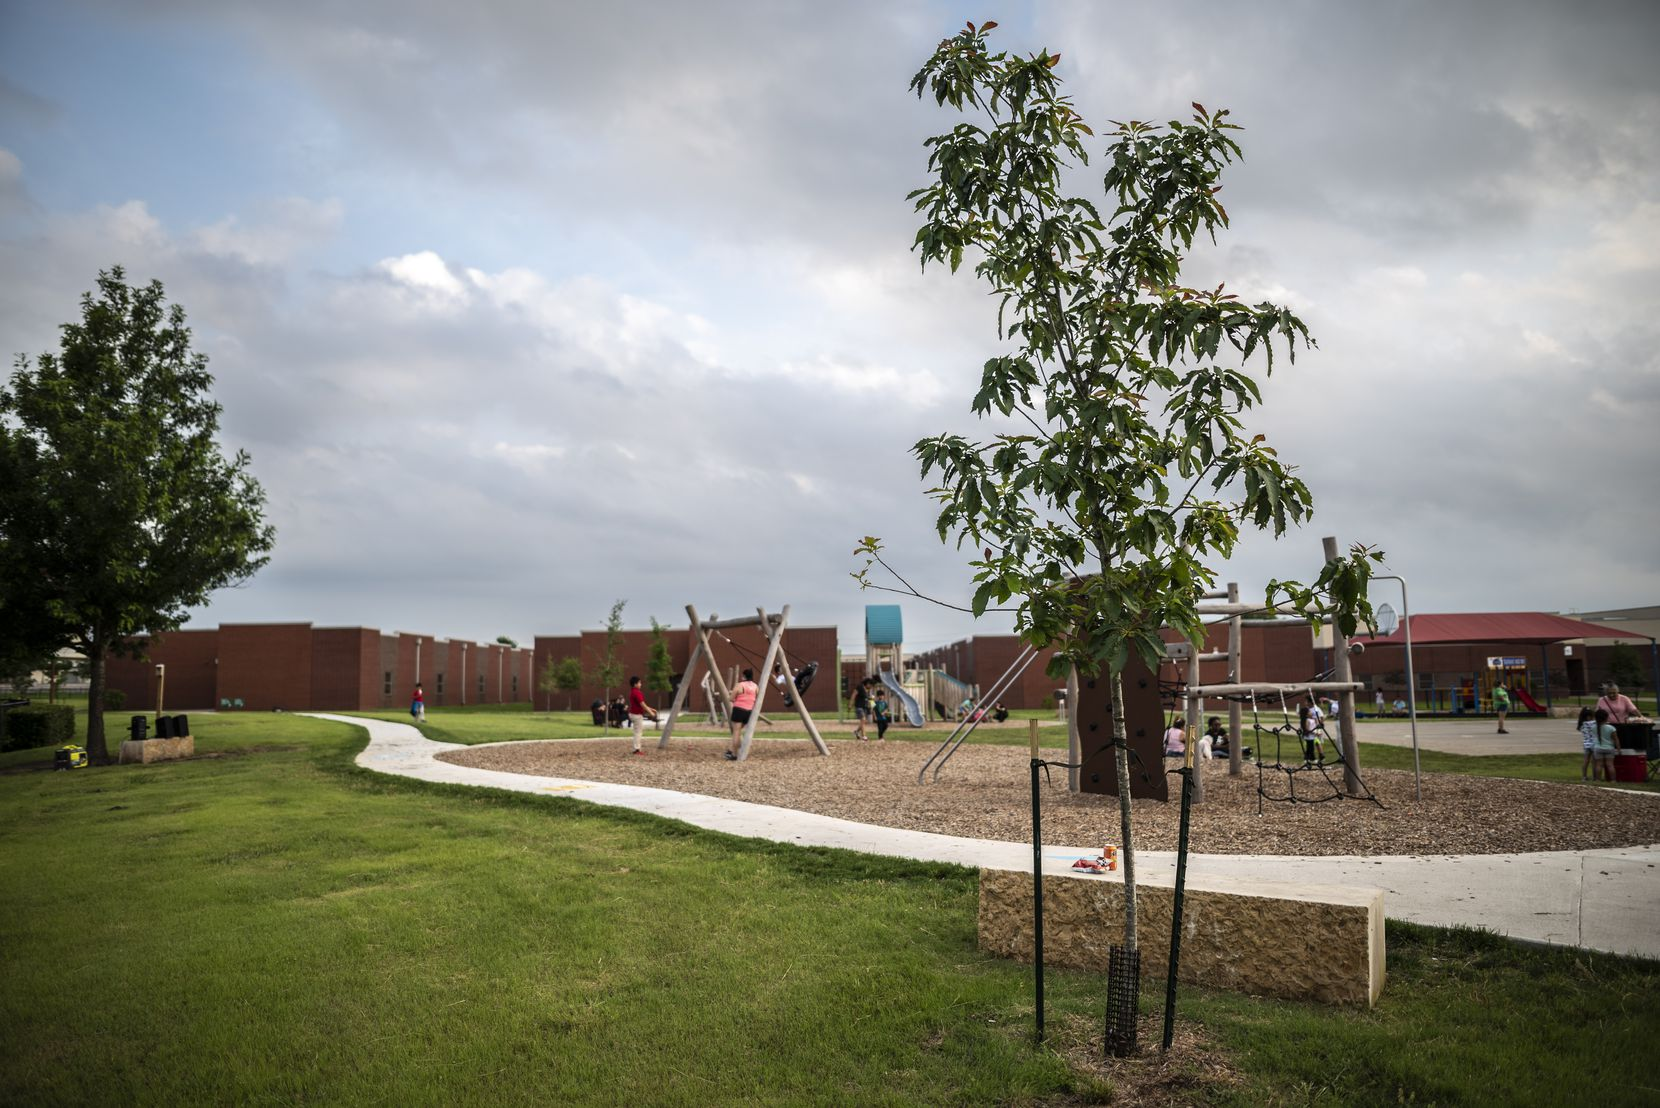 The Cool School Neighborhood Parks initiative includes planting a variety of Texas native trees on campuses and constructing loop trails, such as this one at Dallas ISD's Guzick Elementary.